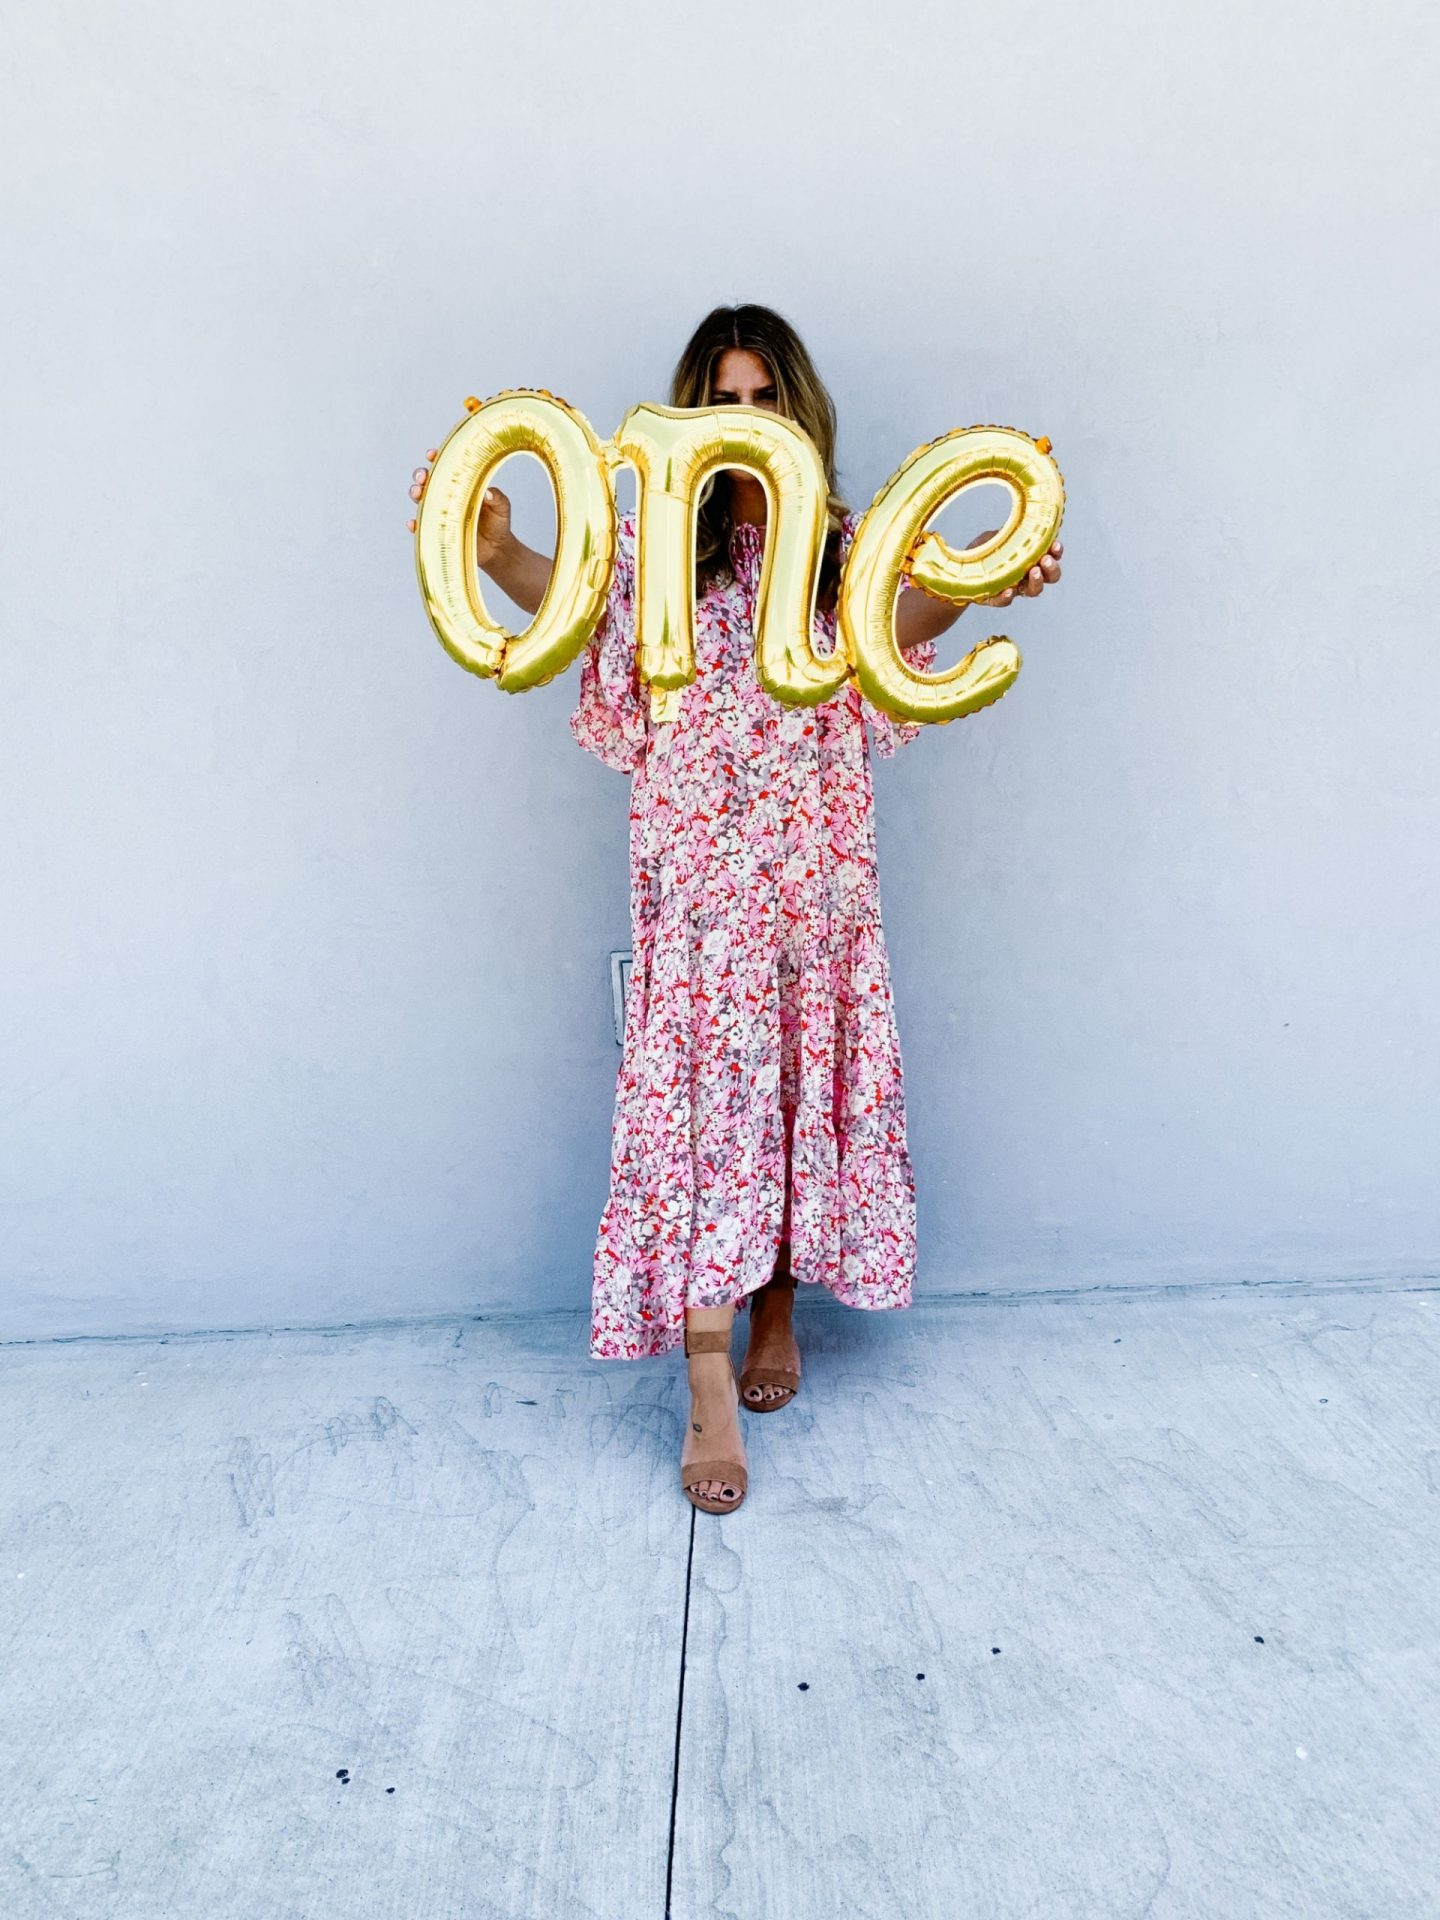 online boutique, 1st birthday, pink maxi dress, boho style, gold balloon, gold number balloon